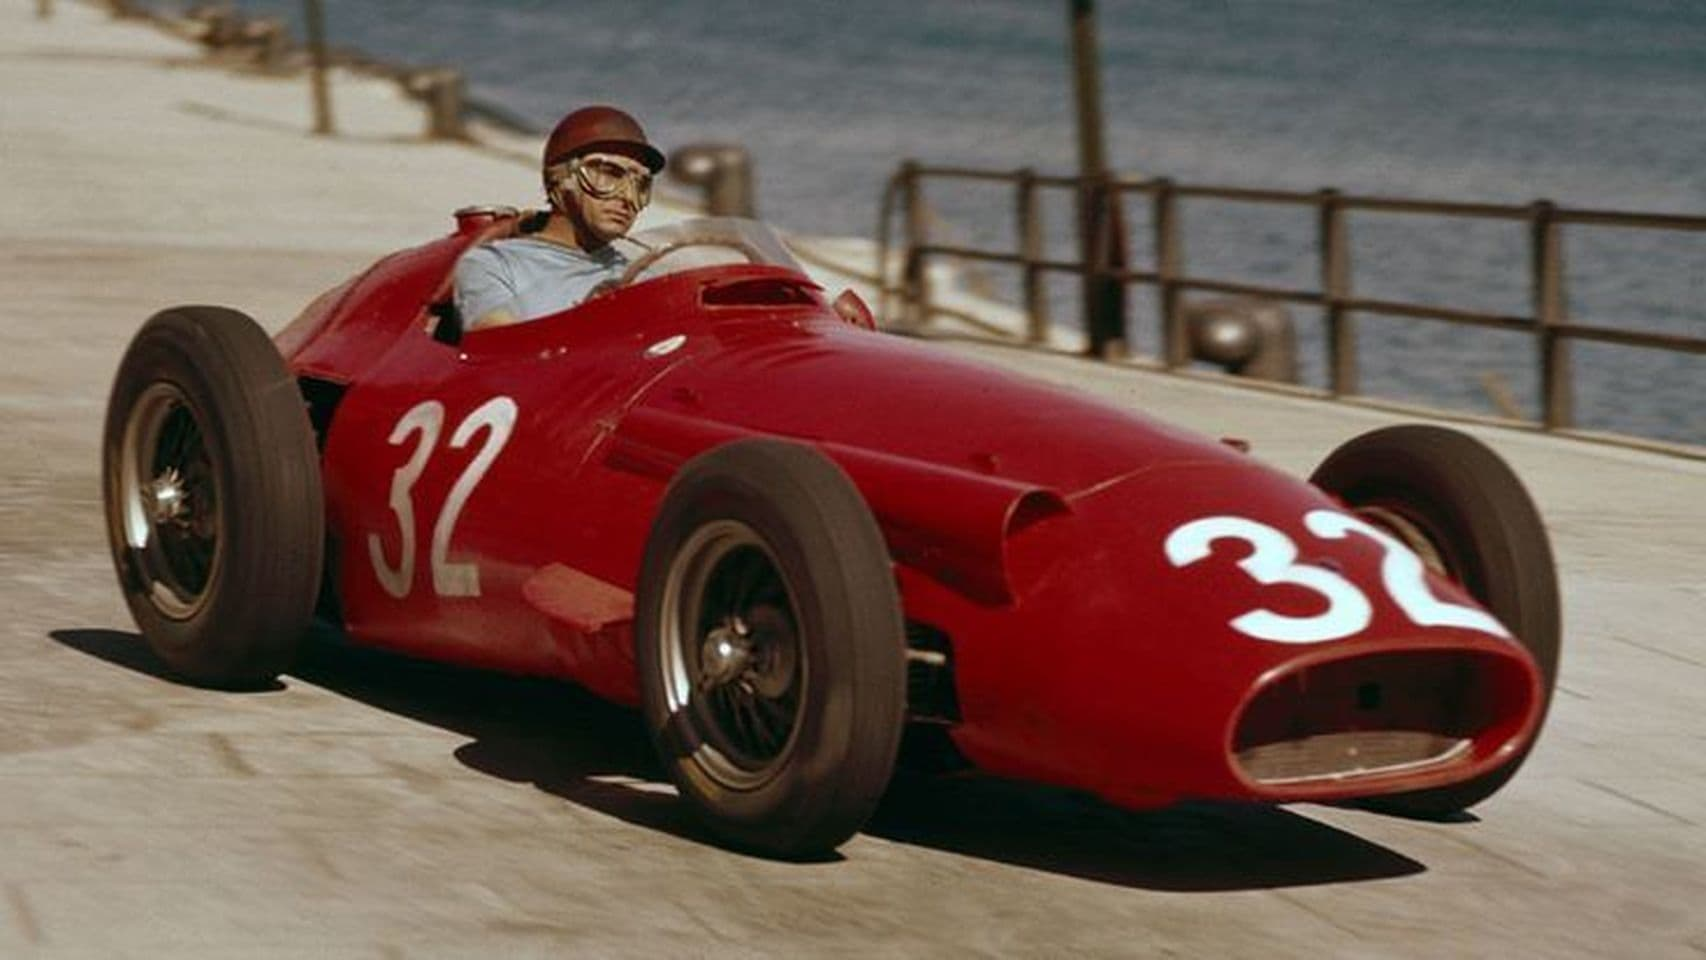 Juan Manuel Fangio wallpapers, images, quotes, Ferrari, Mercedes